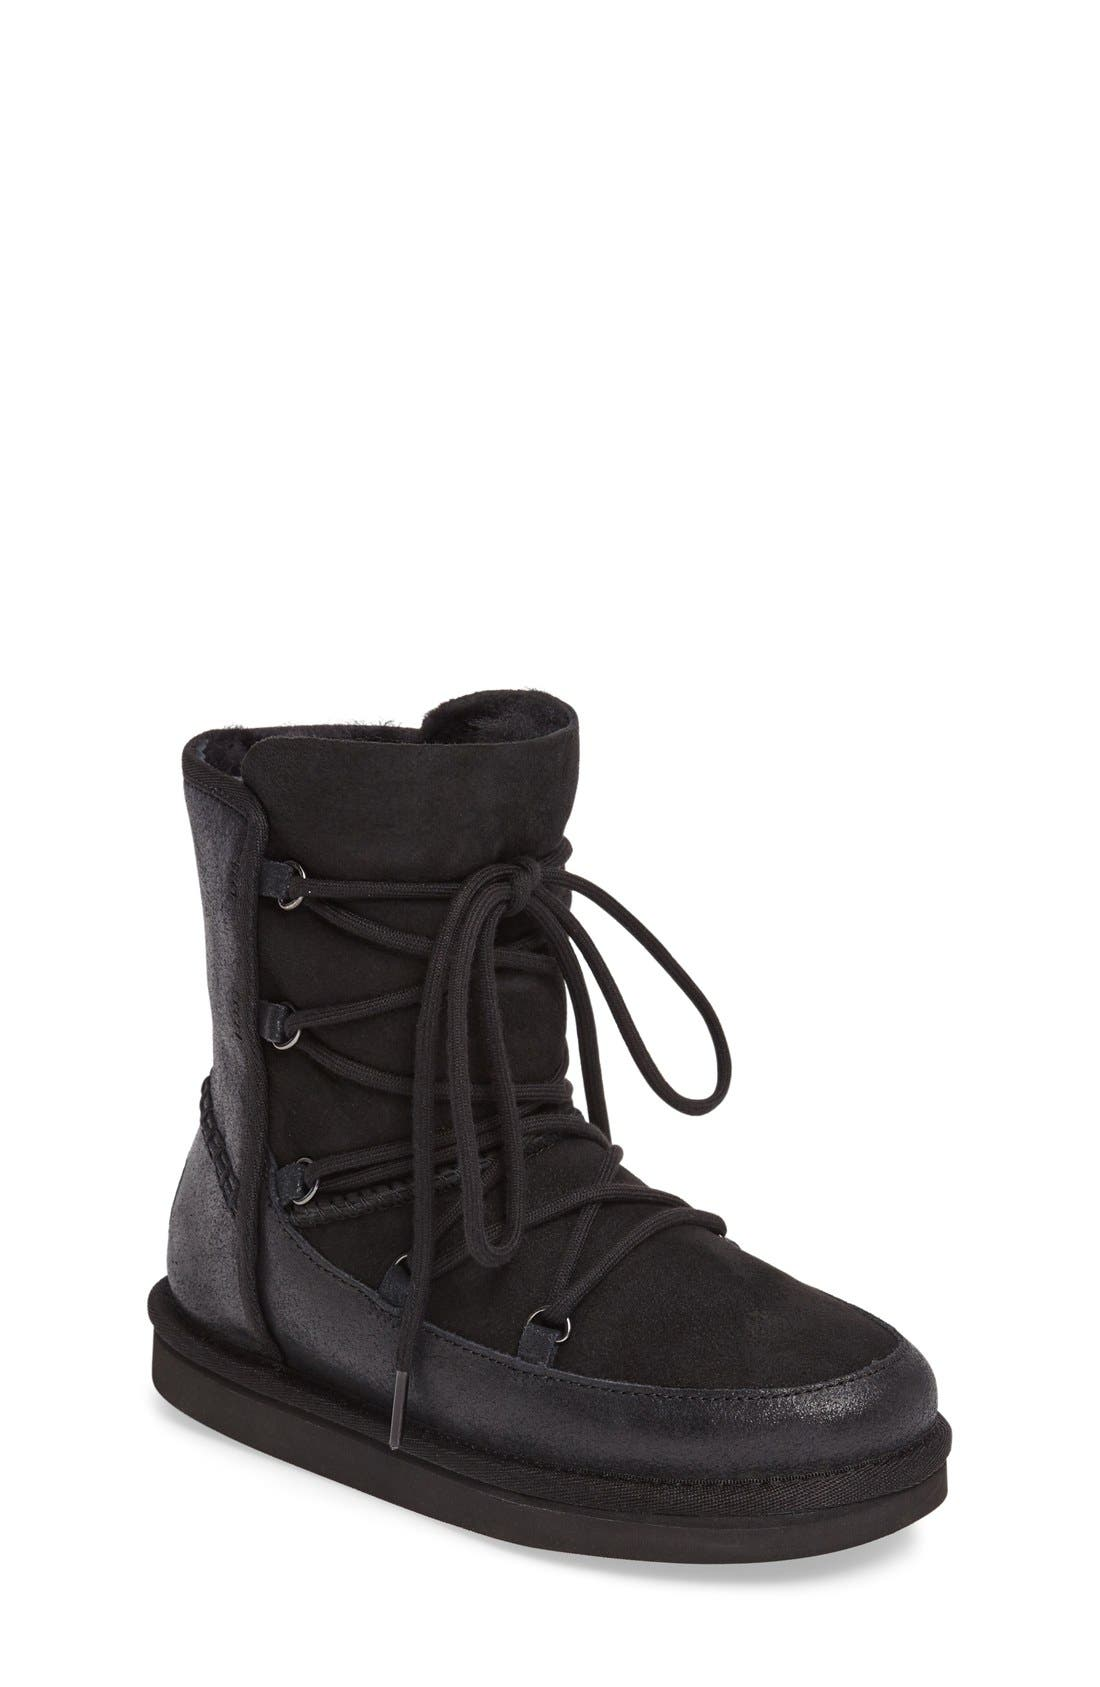 Eliss Water Resistant Suede Boot,                         Main,                         color, Black Suede